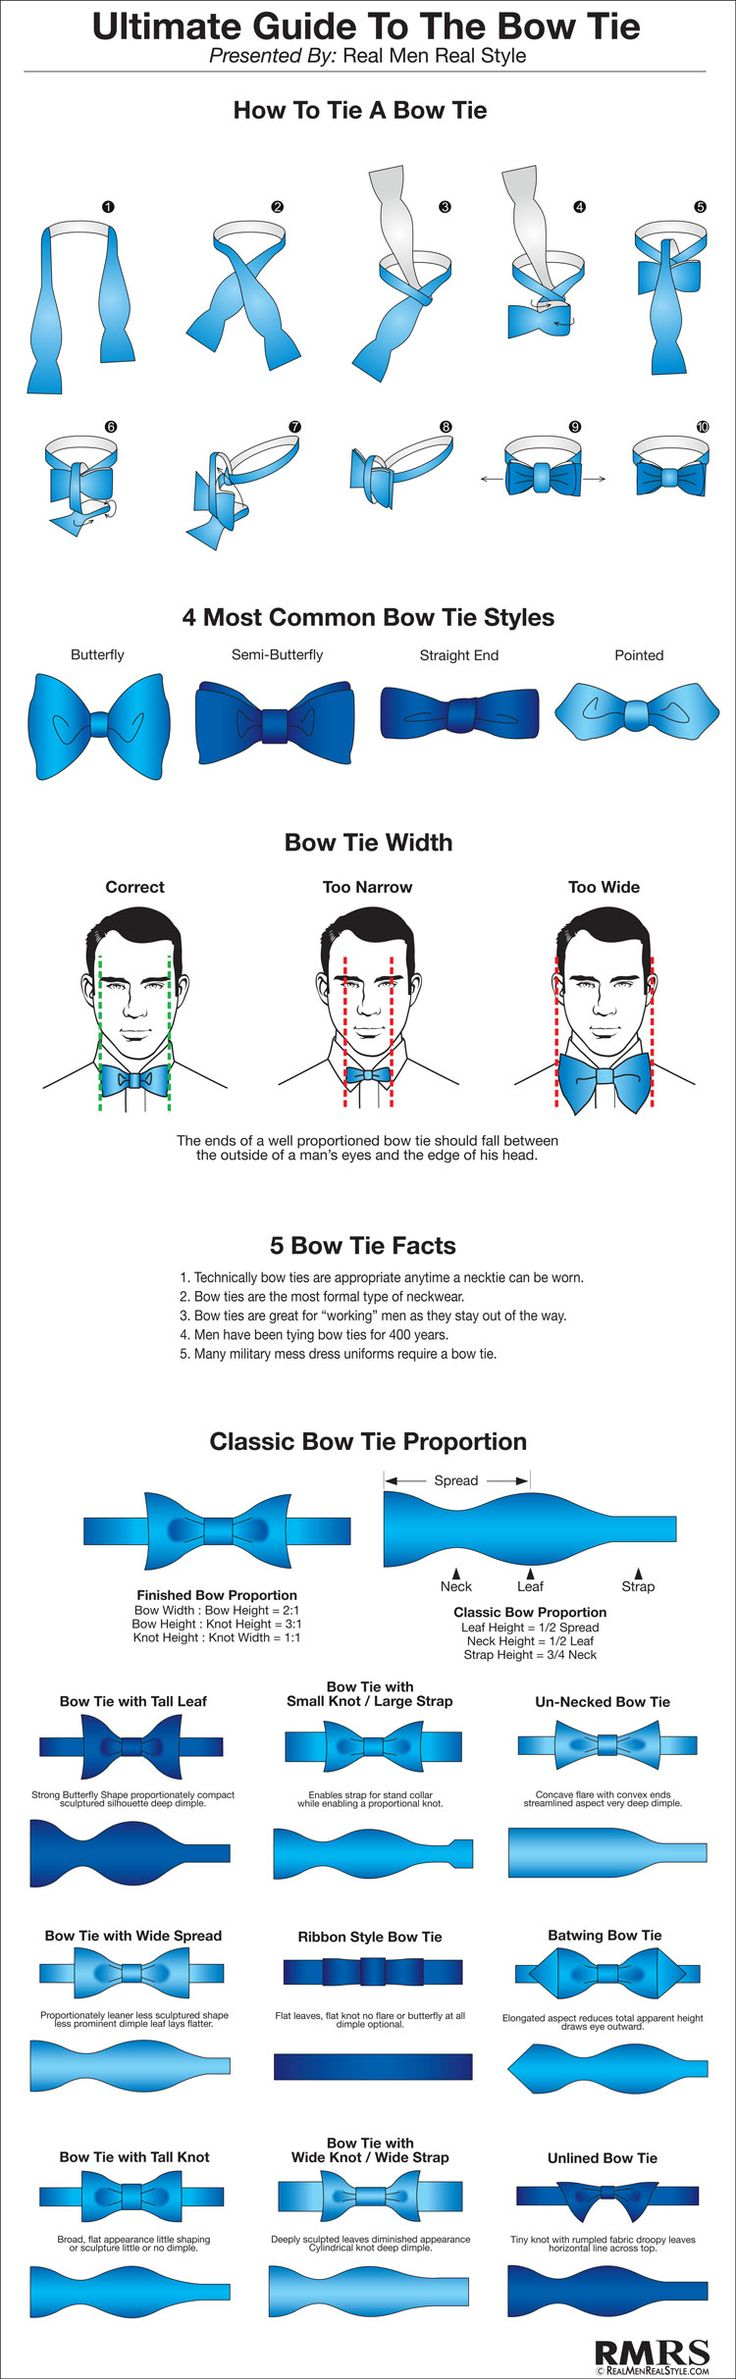 Bowties are simple, functional, and when used properly can draw positive attention to the wearer.